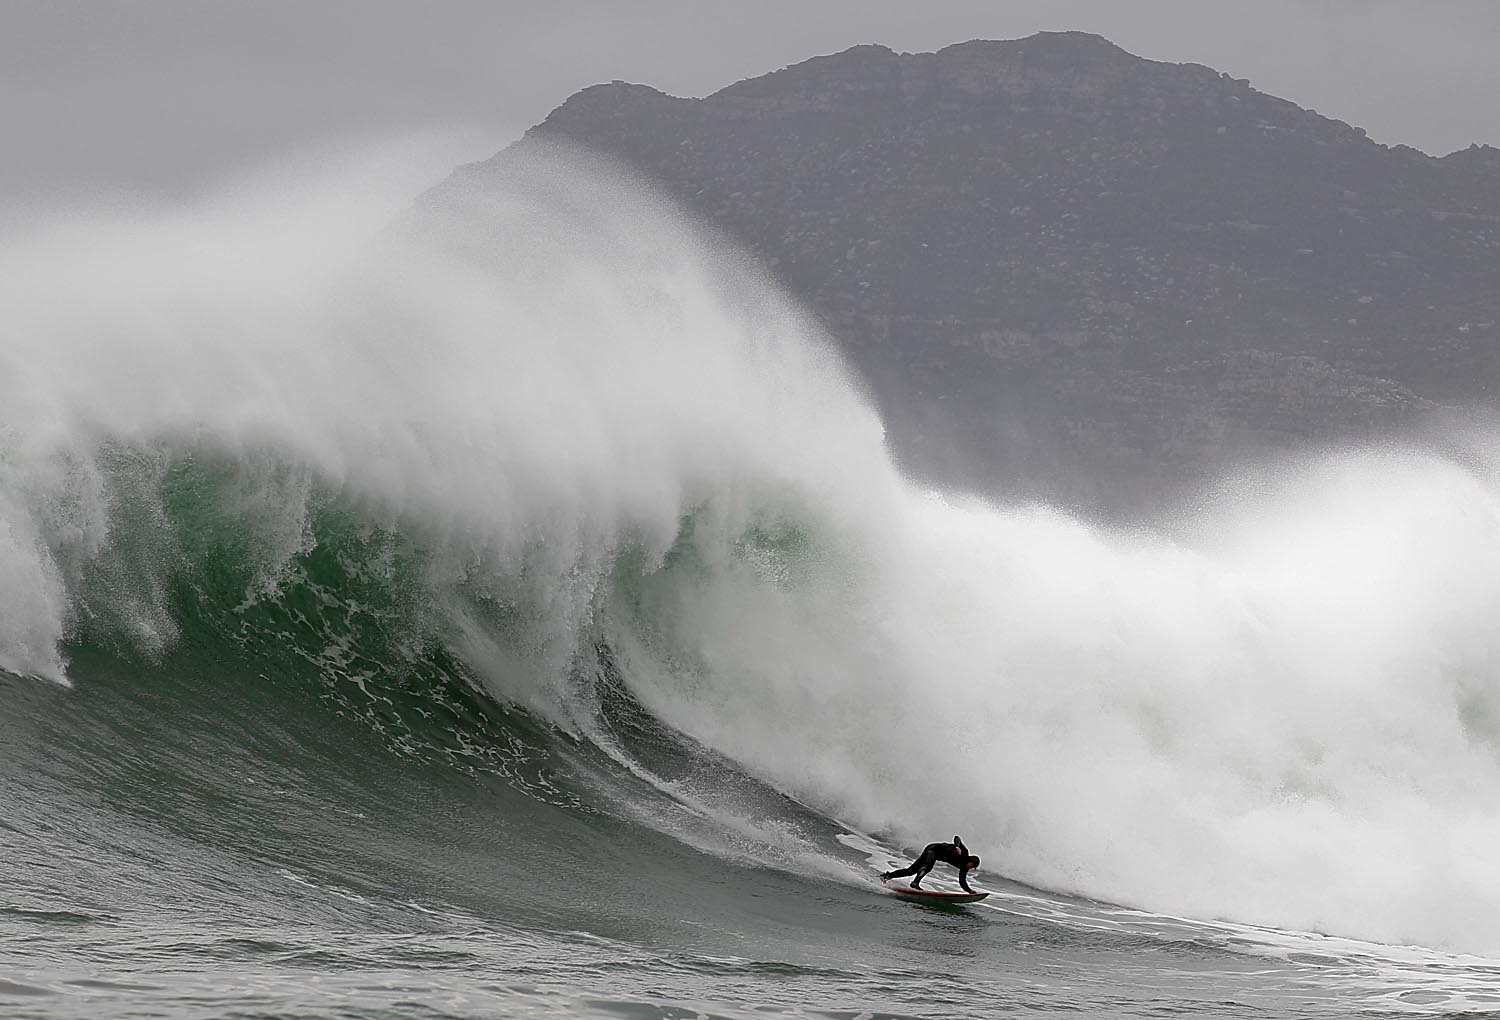 REBEL Sessions 2011 – Rebel Session 5 Big Wave Surfing event in Cape Town, South Africa